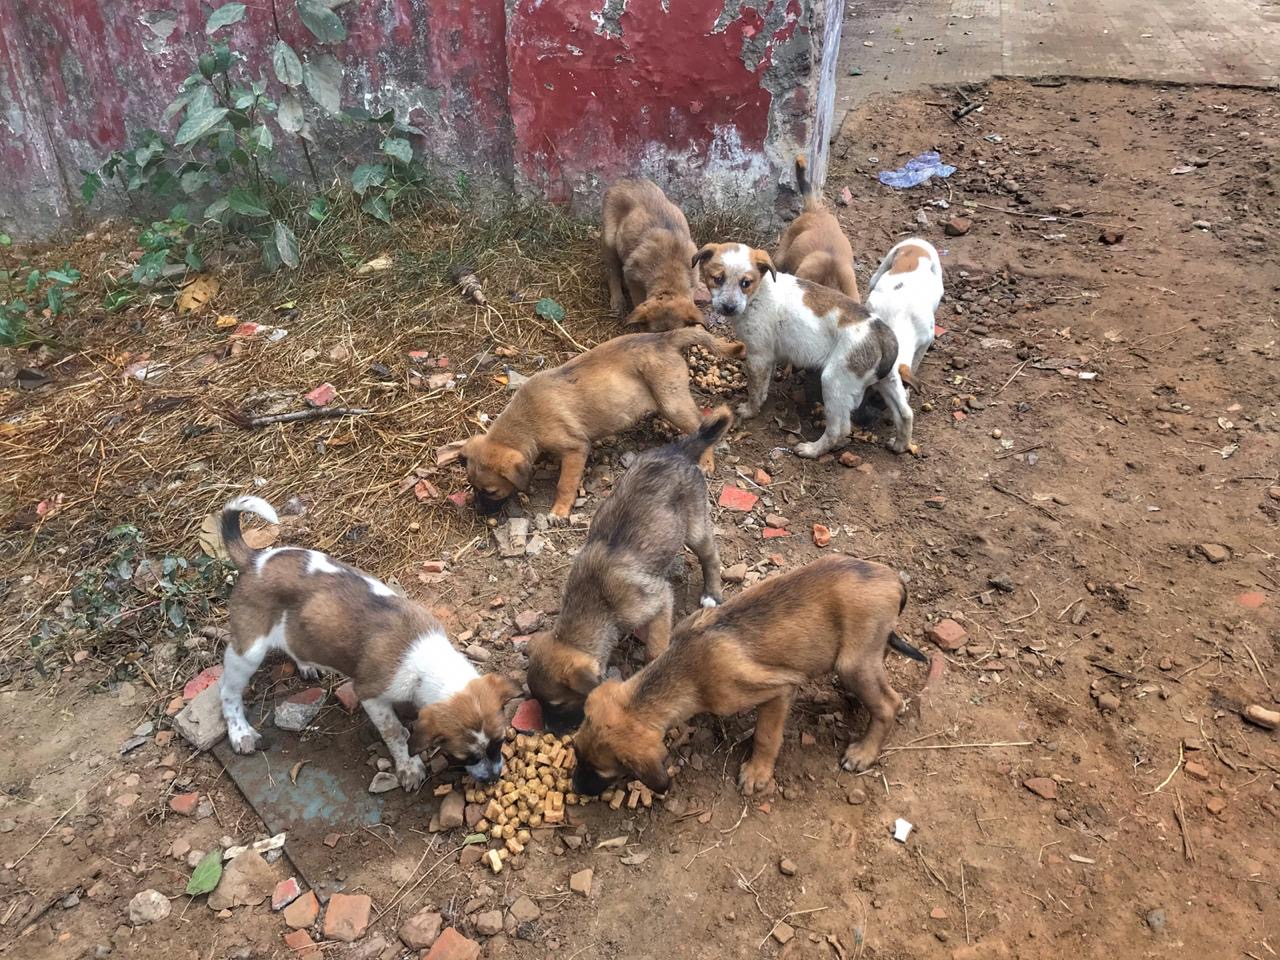 Fundraiser For Treatment For 4 Sweet Pups